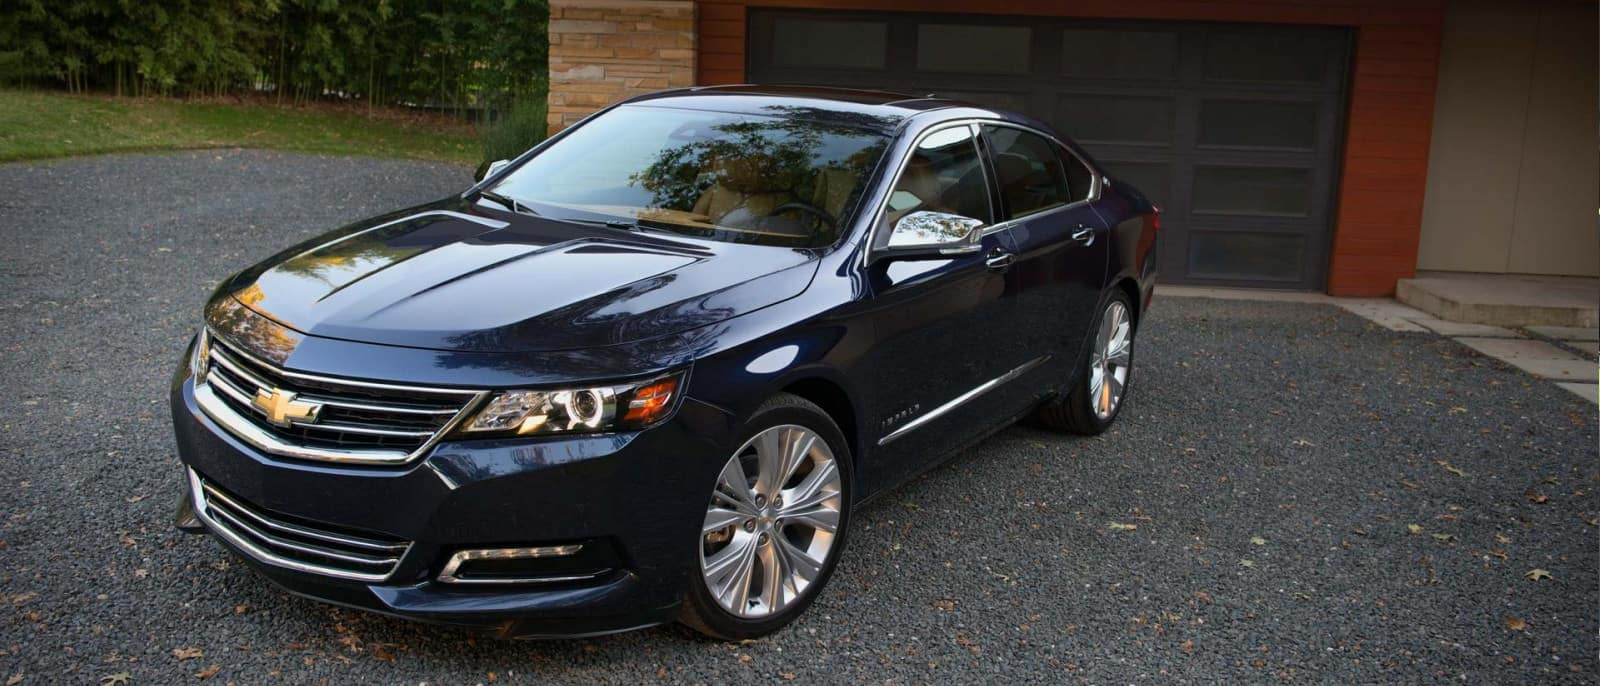 Biggers Chevy Service >> 2014 Chevrolet Impala Elgin Schaumburg IL | Biggers Chevy